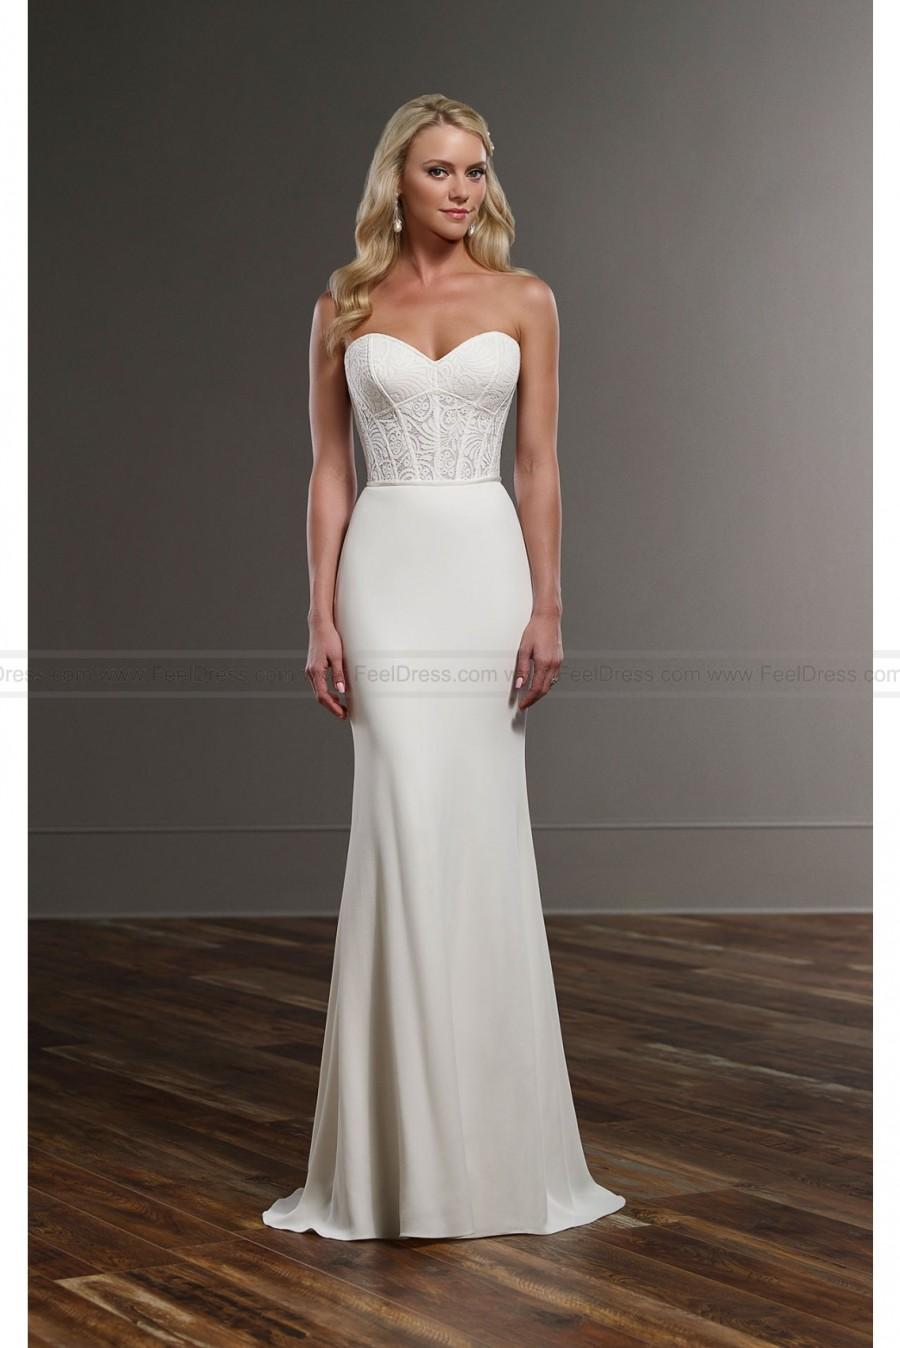 Martina liana modern wedding gown separates style cora for Cheap wedding dresses edmonton